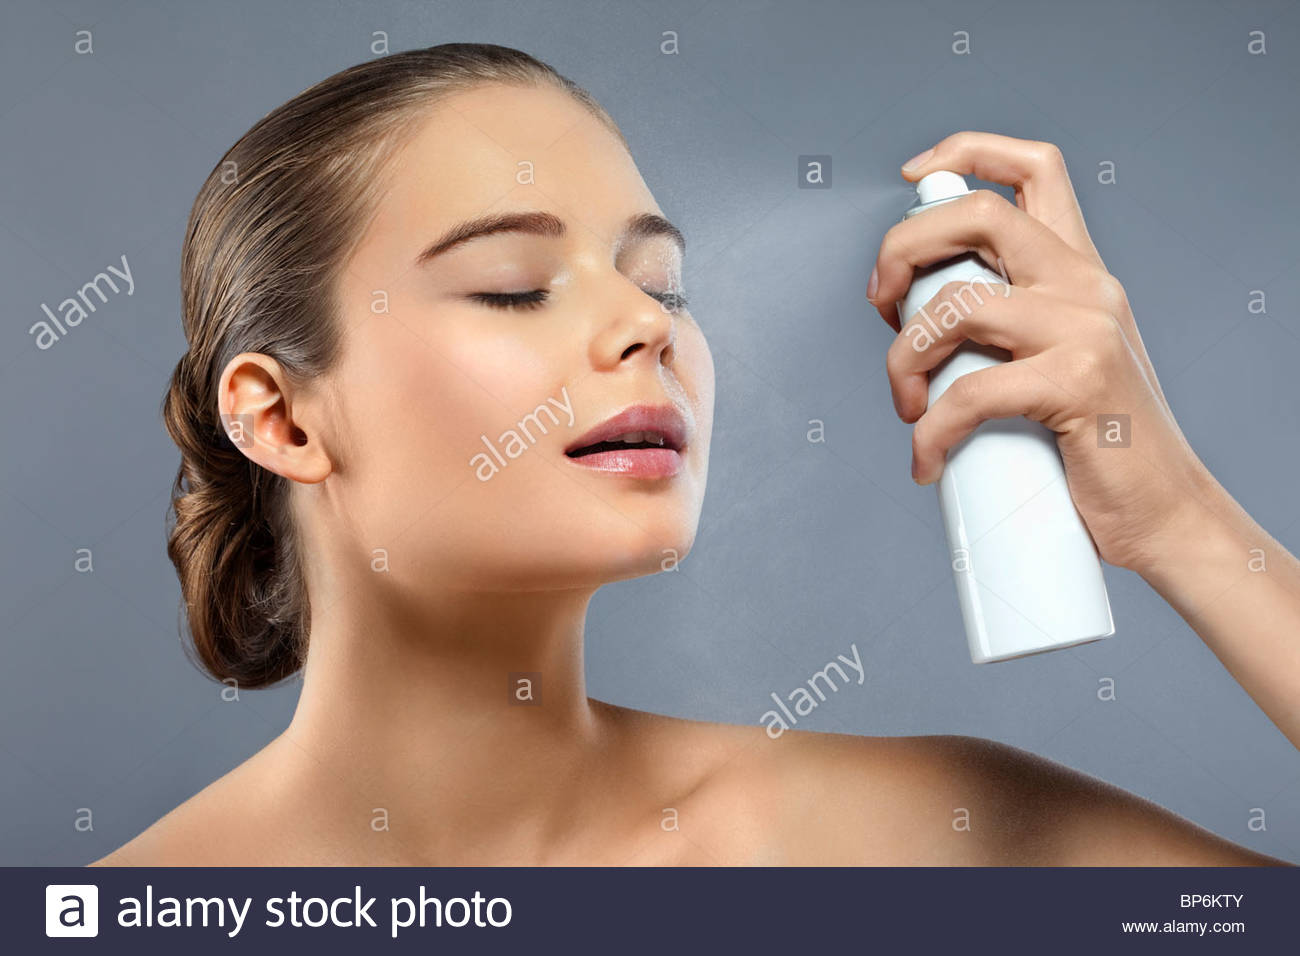 A woman spraying her face with hydrating spray - Stock Image